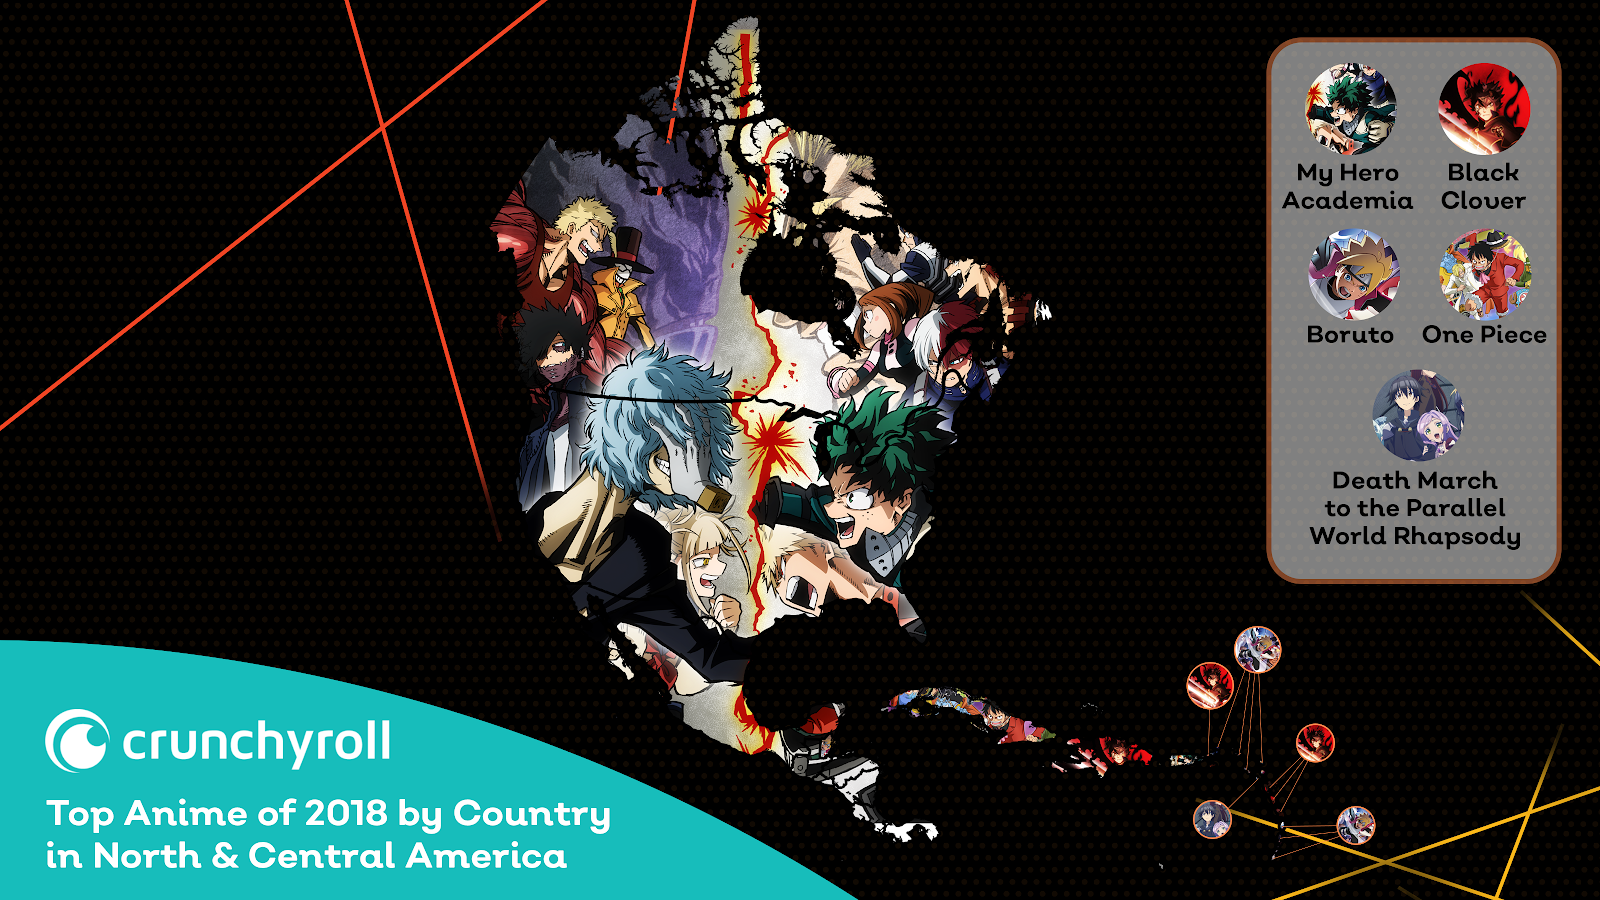 Crunchyroll Top 2018 Anime - North & Central America America (click to enlarge)